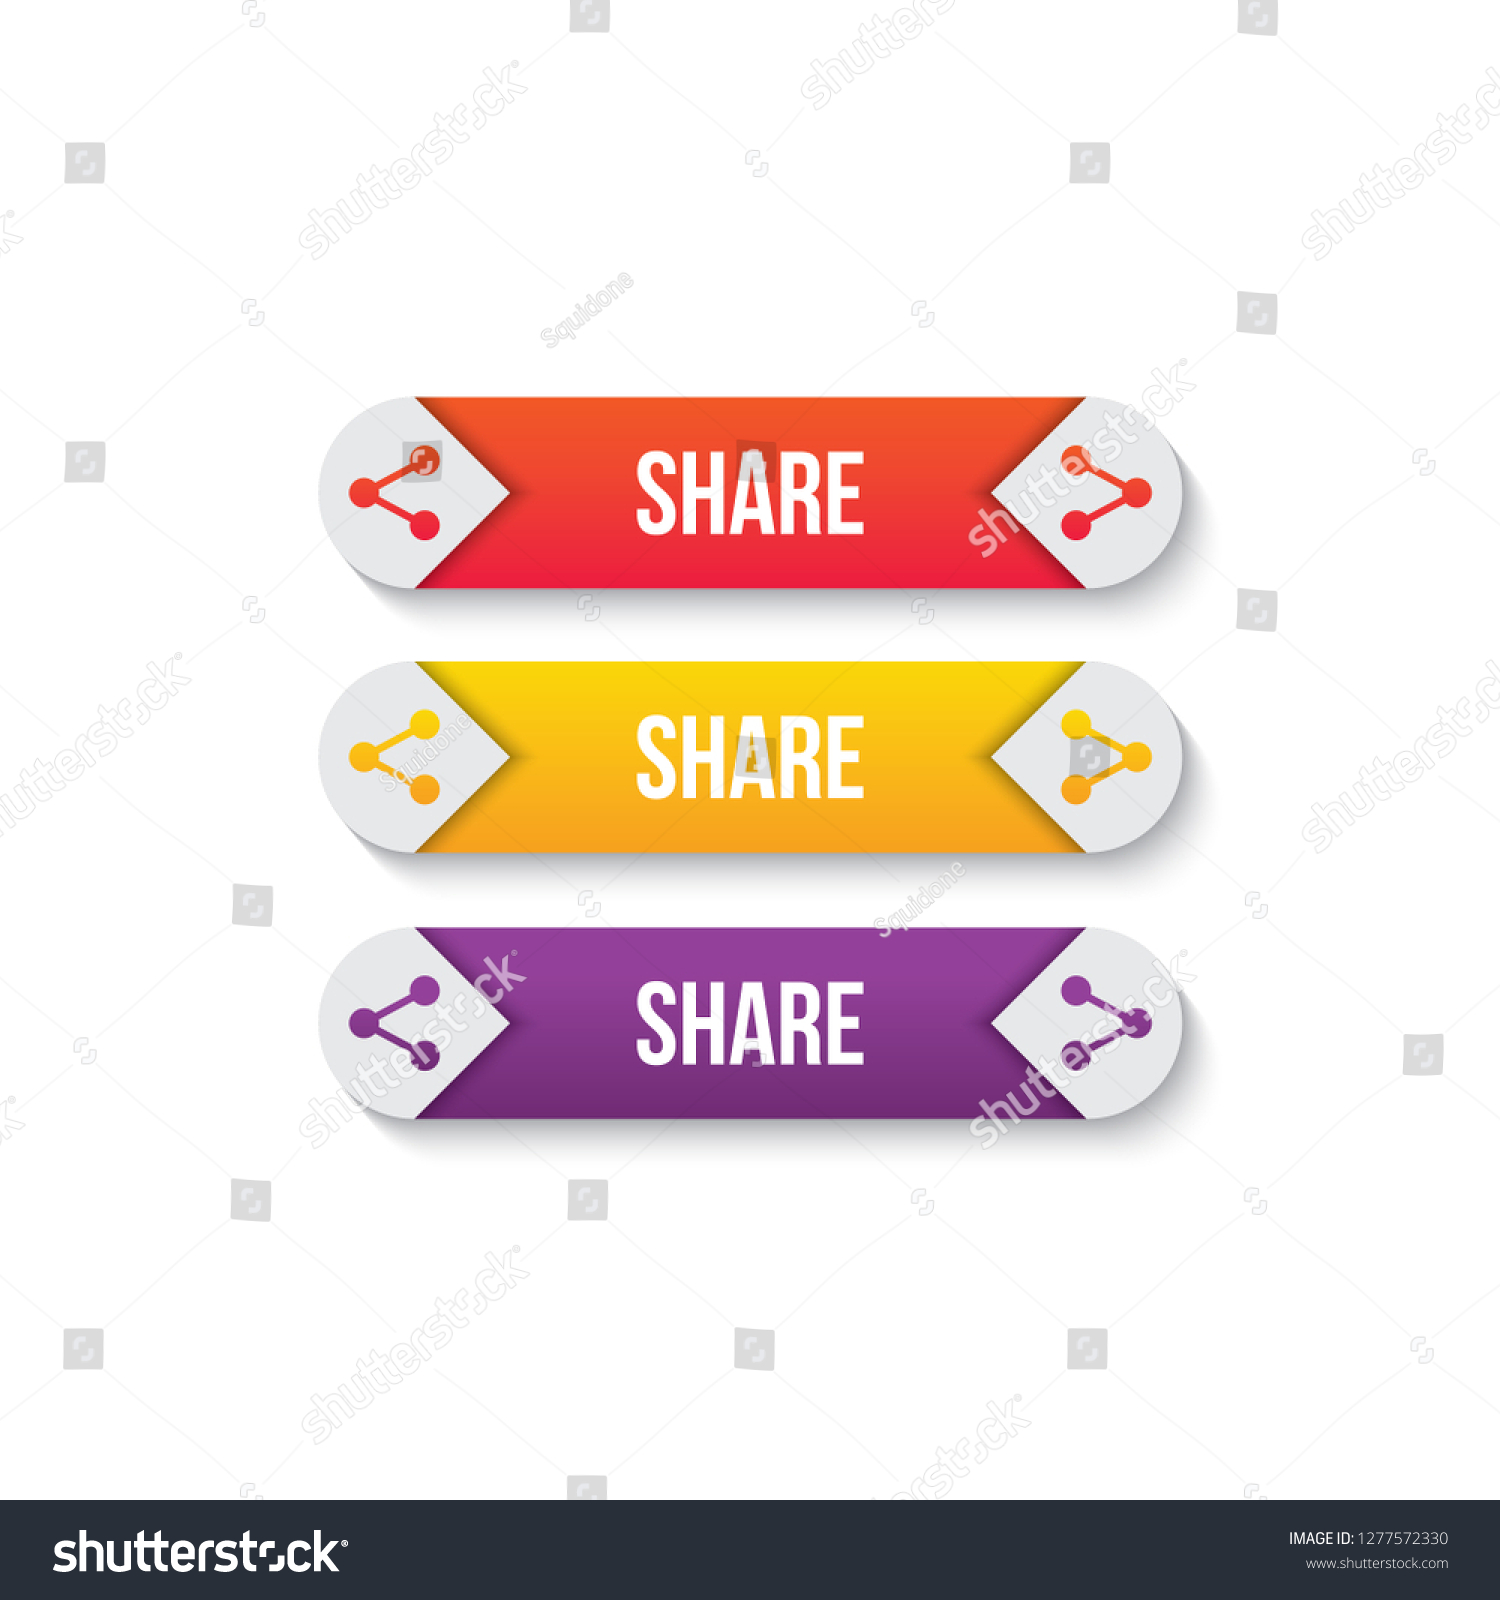 Share Websites Share Button Icon Link Button Websites Stock Vector Royalty Free